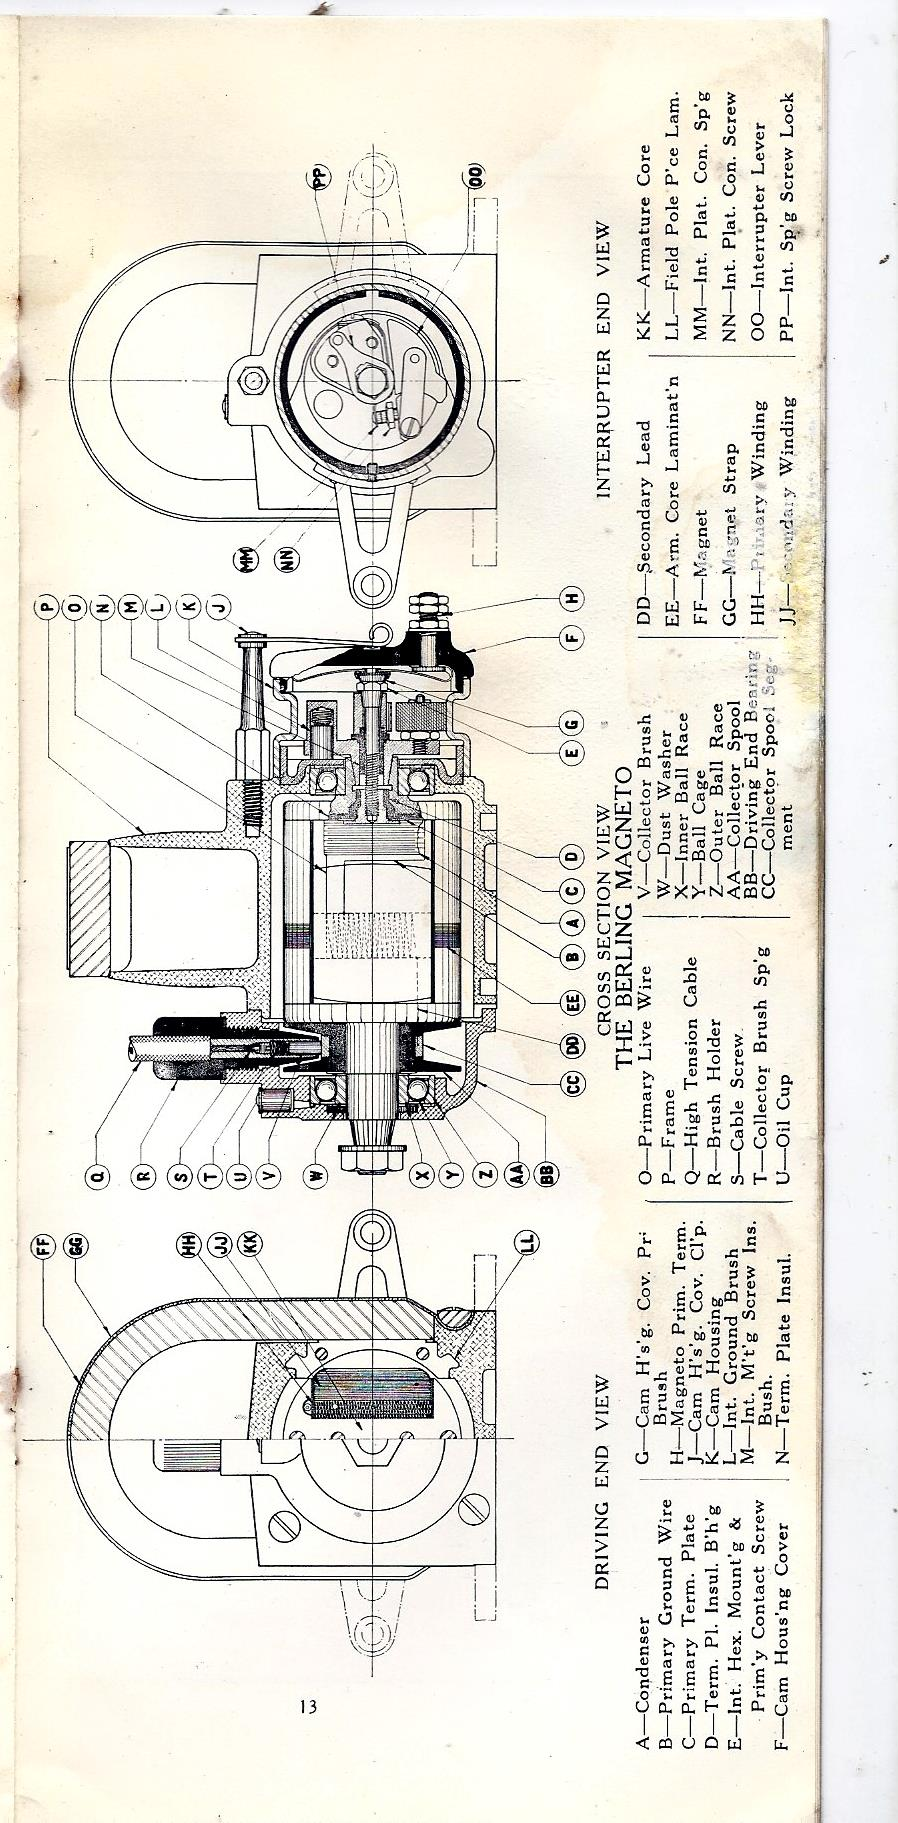 Antique Tractor Wiring Diagrams Auto Electrical Diagram Sho Me Berling Types S Magneto Manual